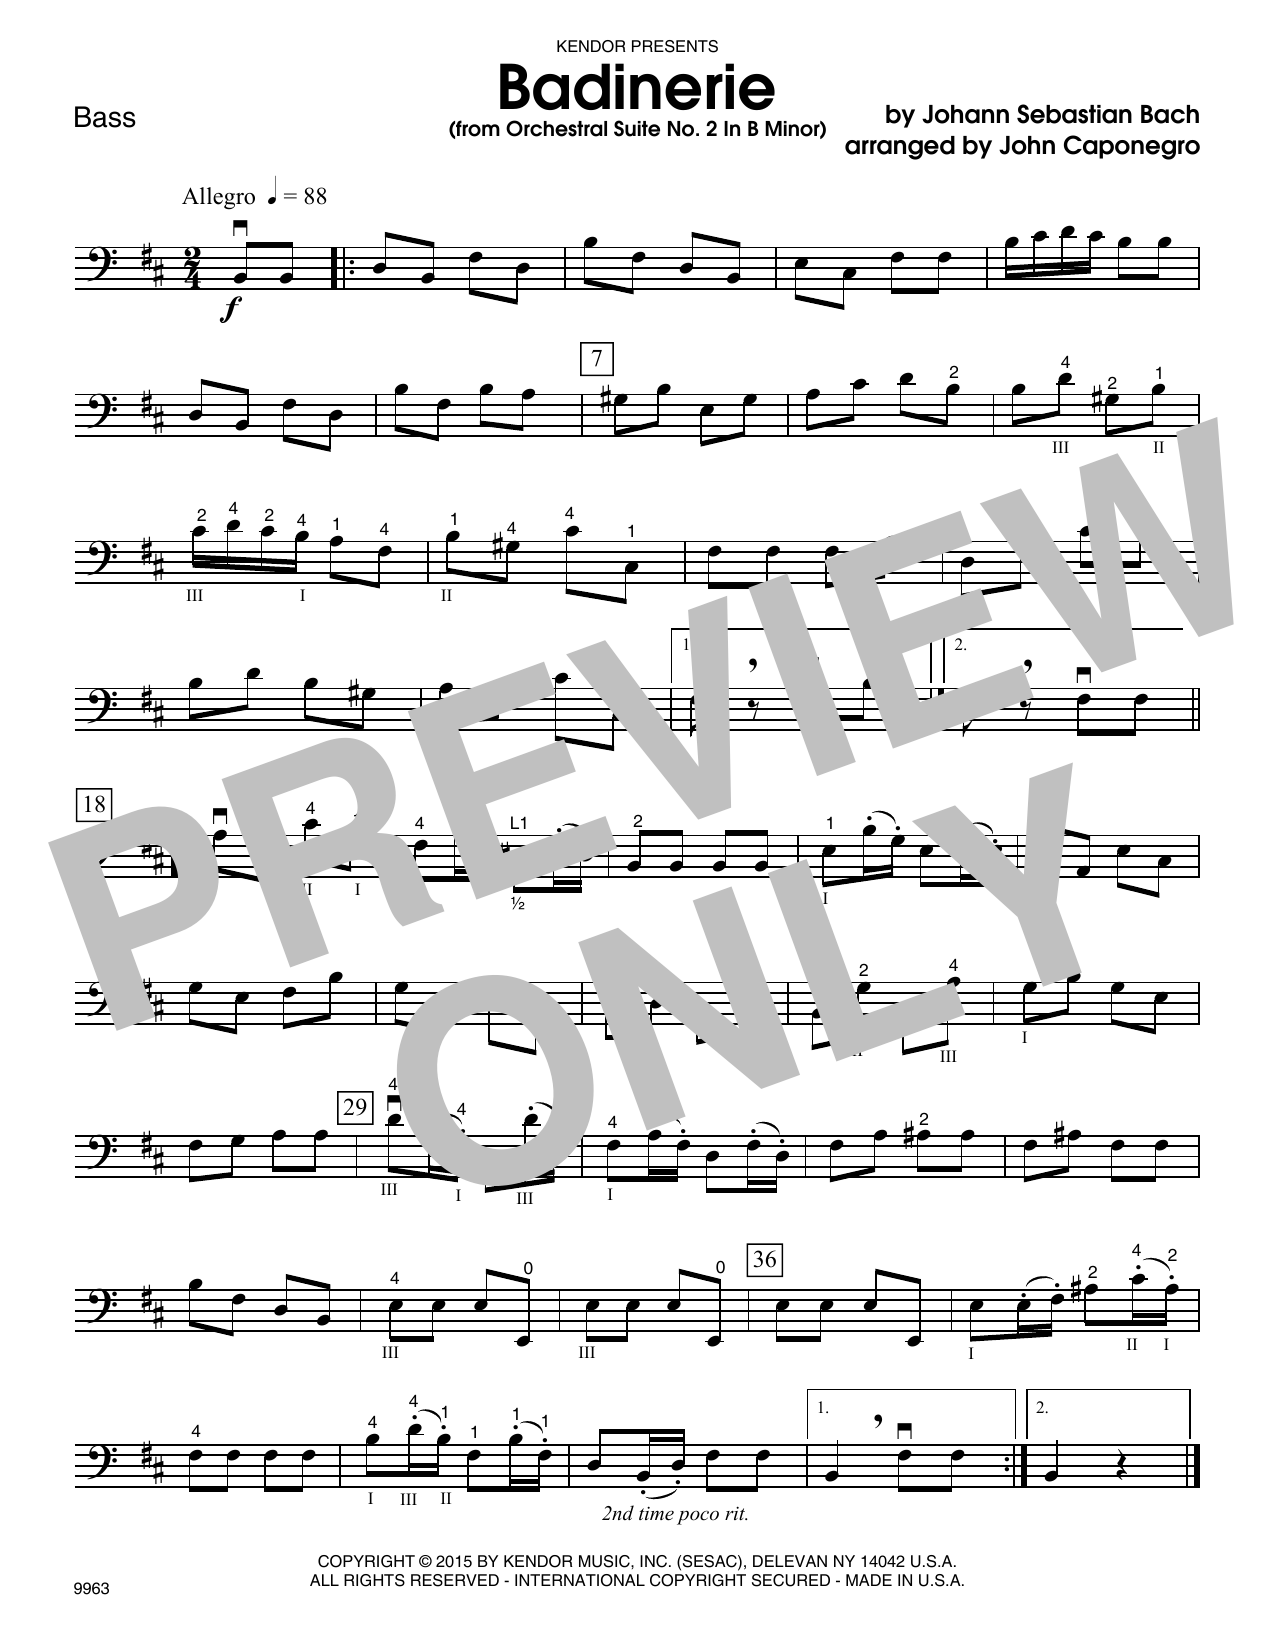 John Caponegro Badinerie (from Orchestral Suite No. 2 In B Minor) - Bass sheet music notes and chords. Download Printable PDF.